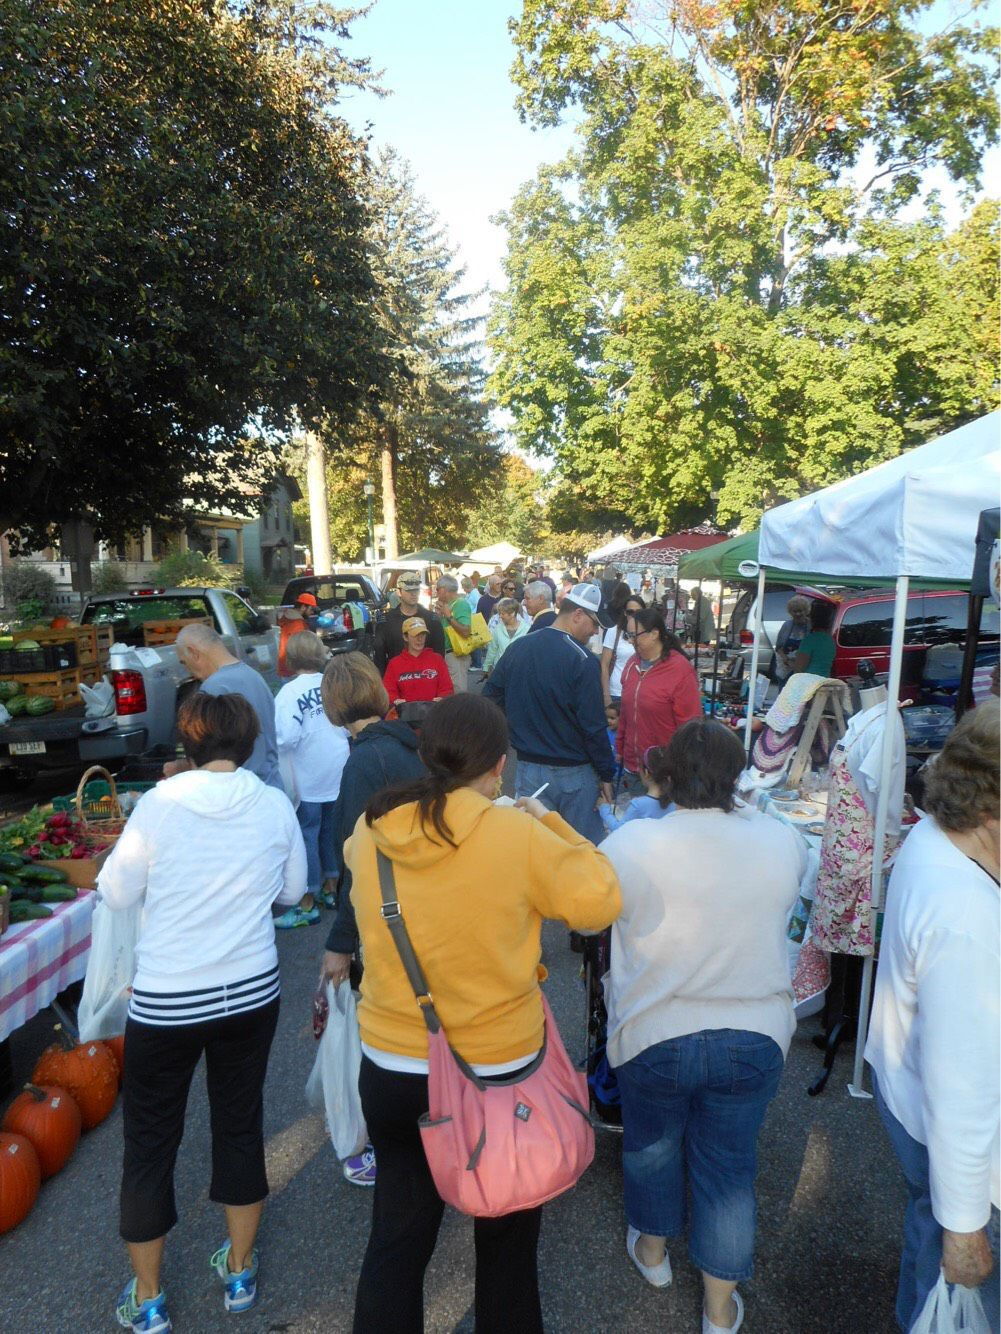 Farmers' markets open next week with local produce, goods